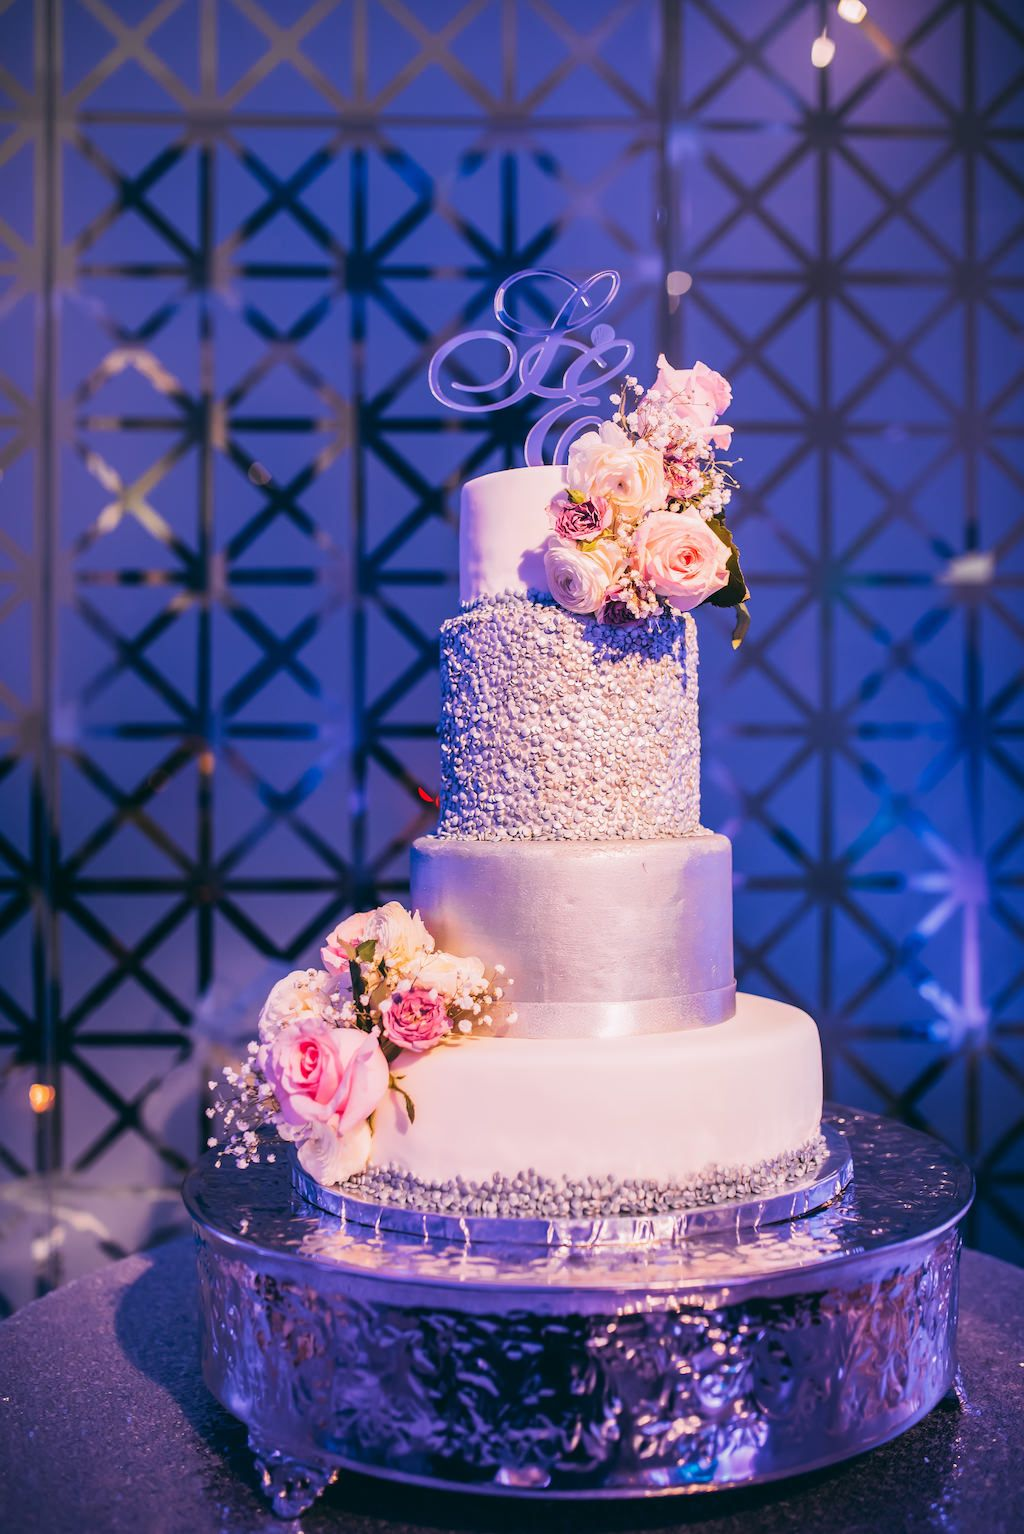 Cascading Bouquets And Their Cake Counterparts A Styled Shoot